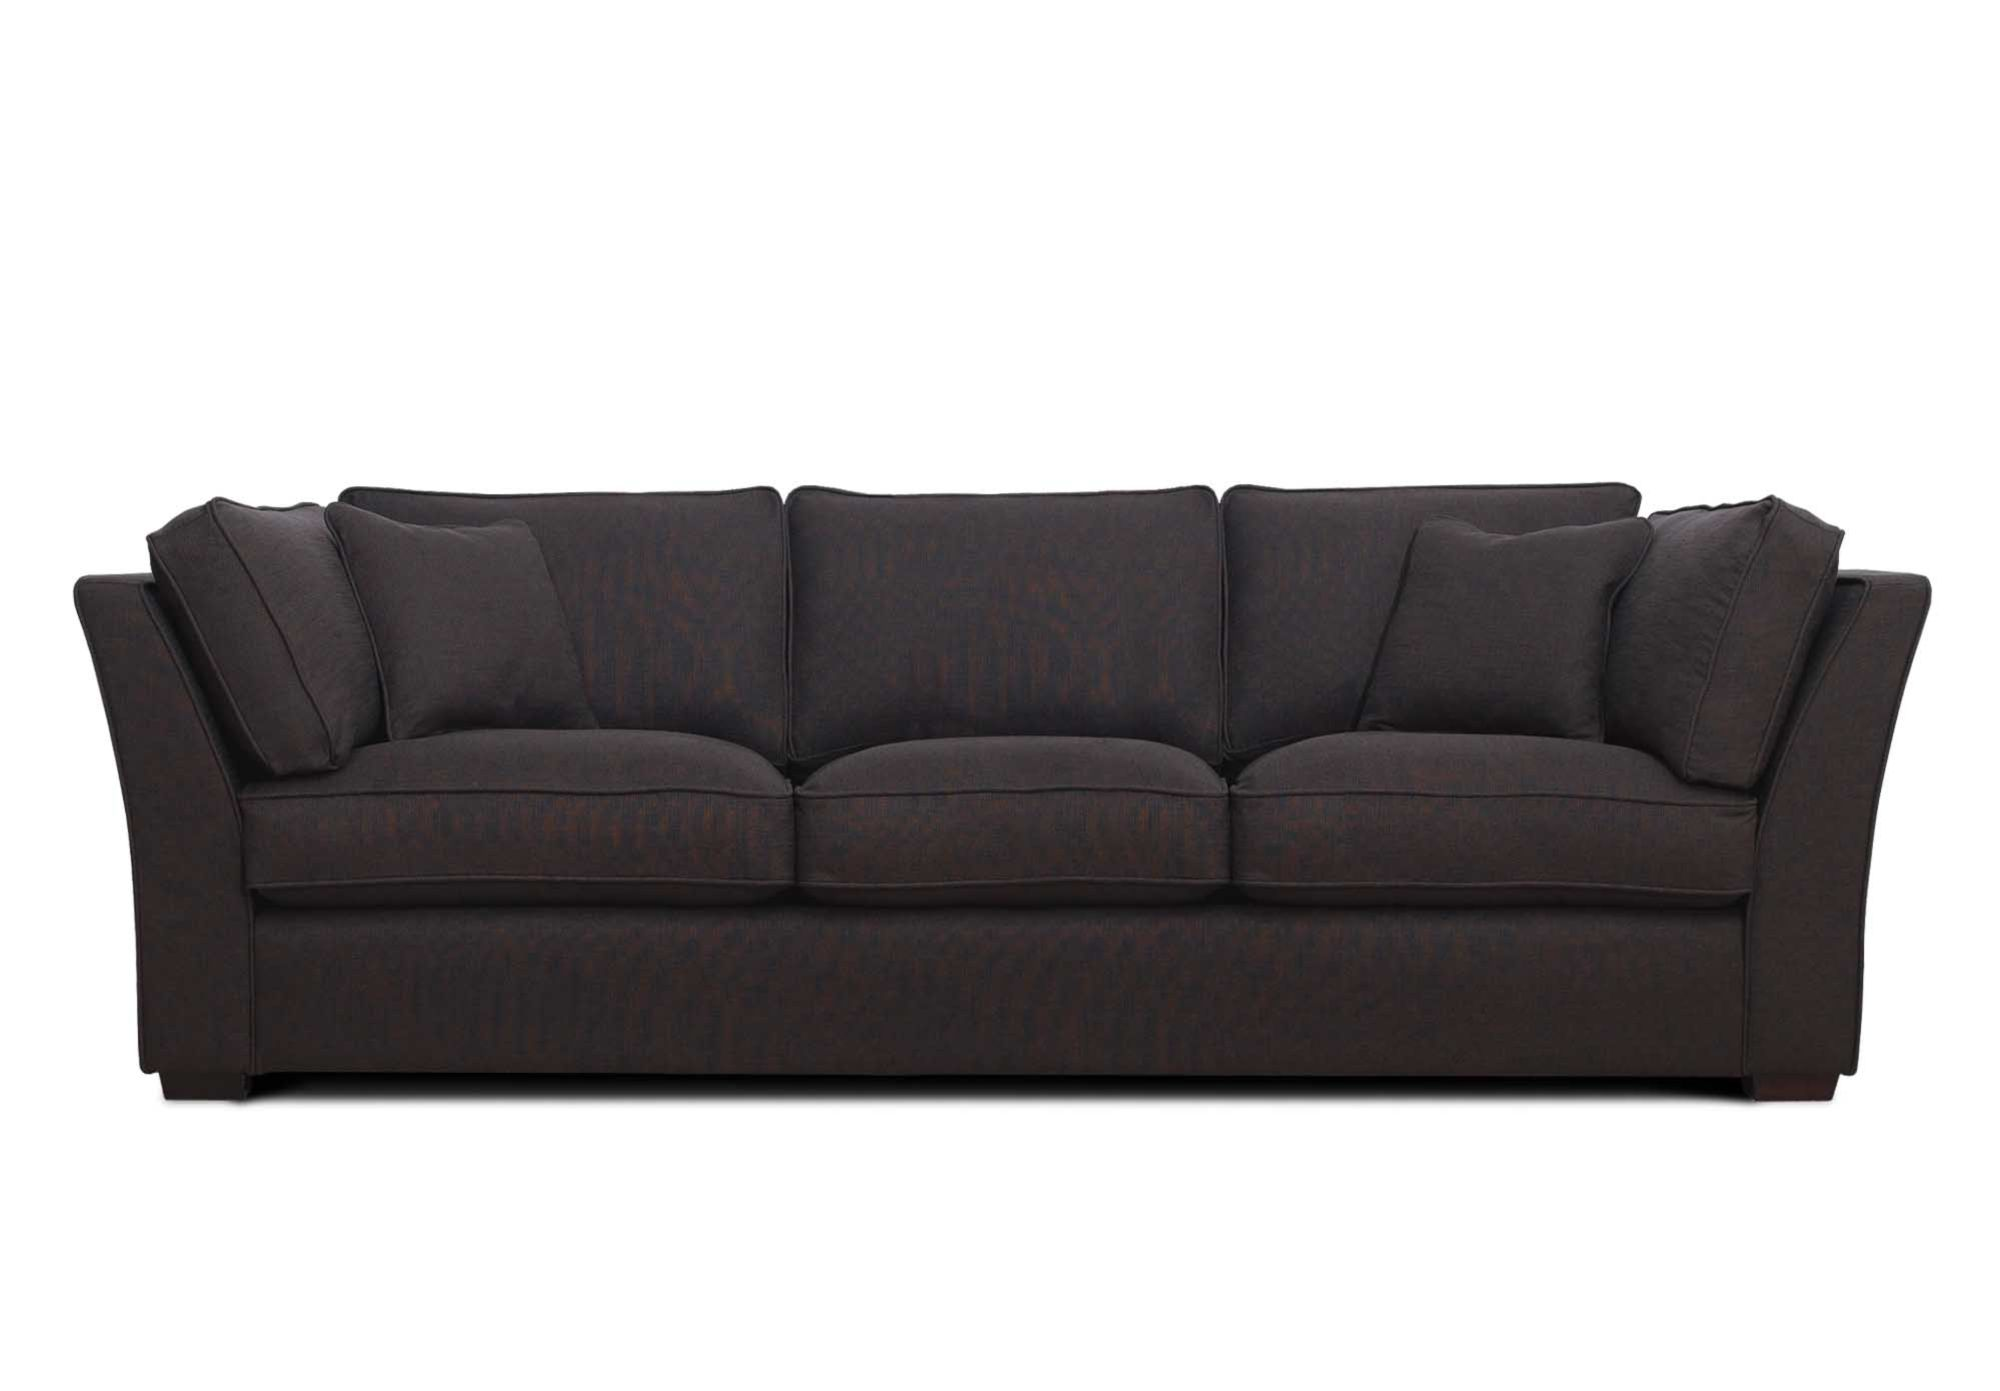 Sofa Couch with Pillow Padded Arms in Chocolate Microfiber